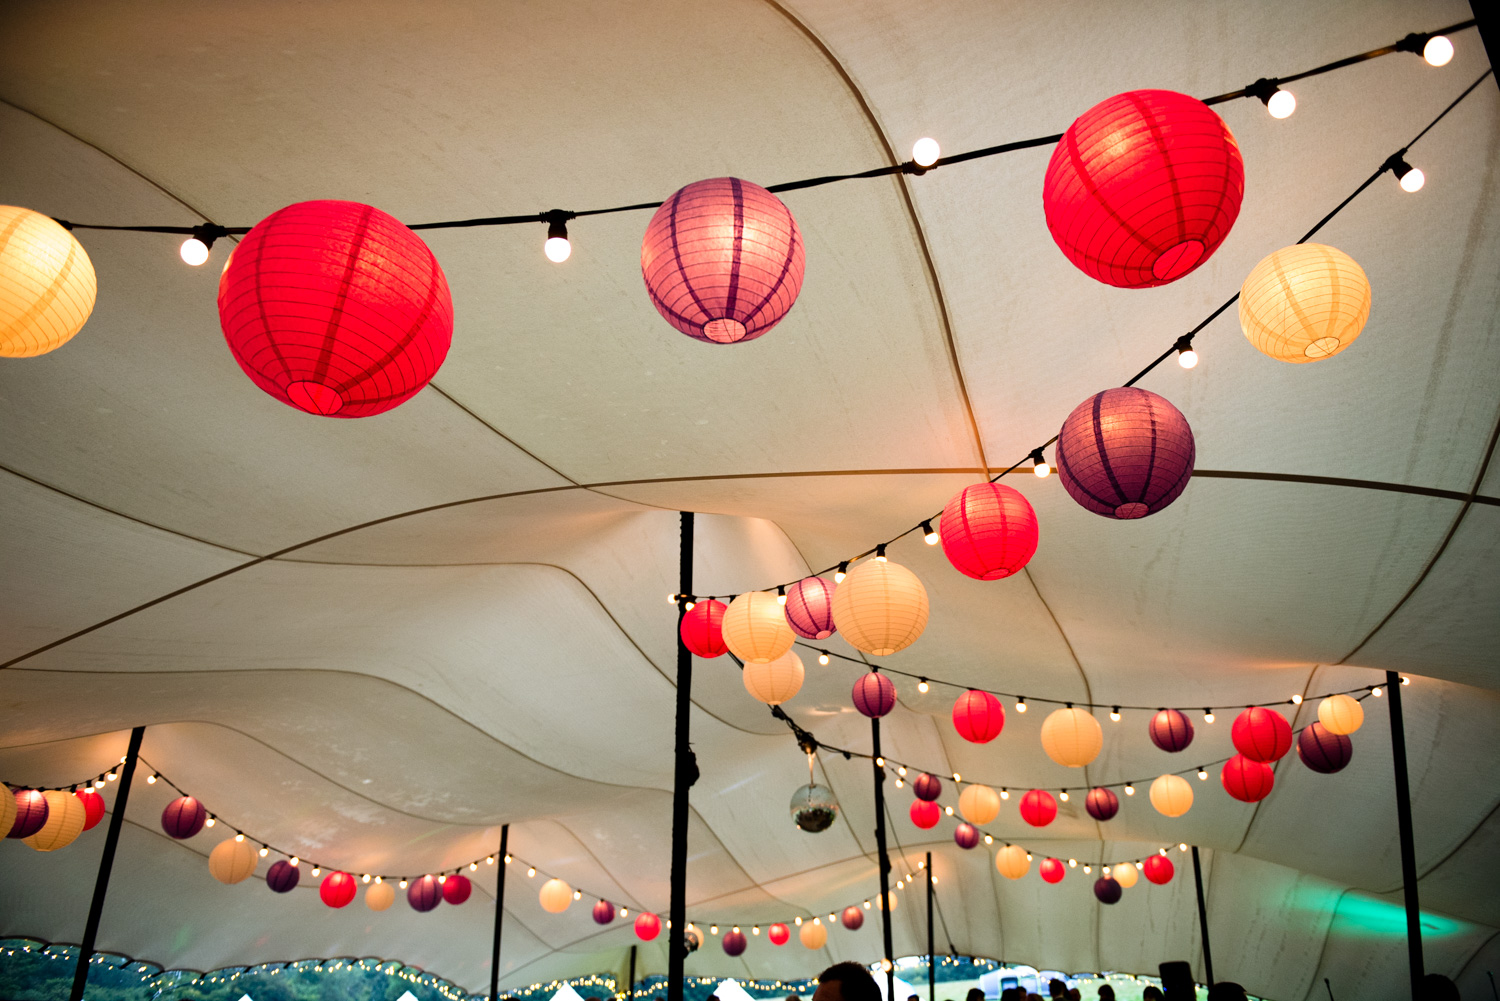 Add a party vibe - Festoon lights look great with hanging lanterns and are a great source of lighting in an outdoor structure.